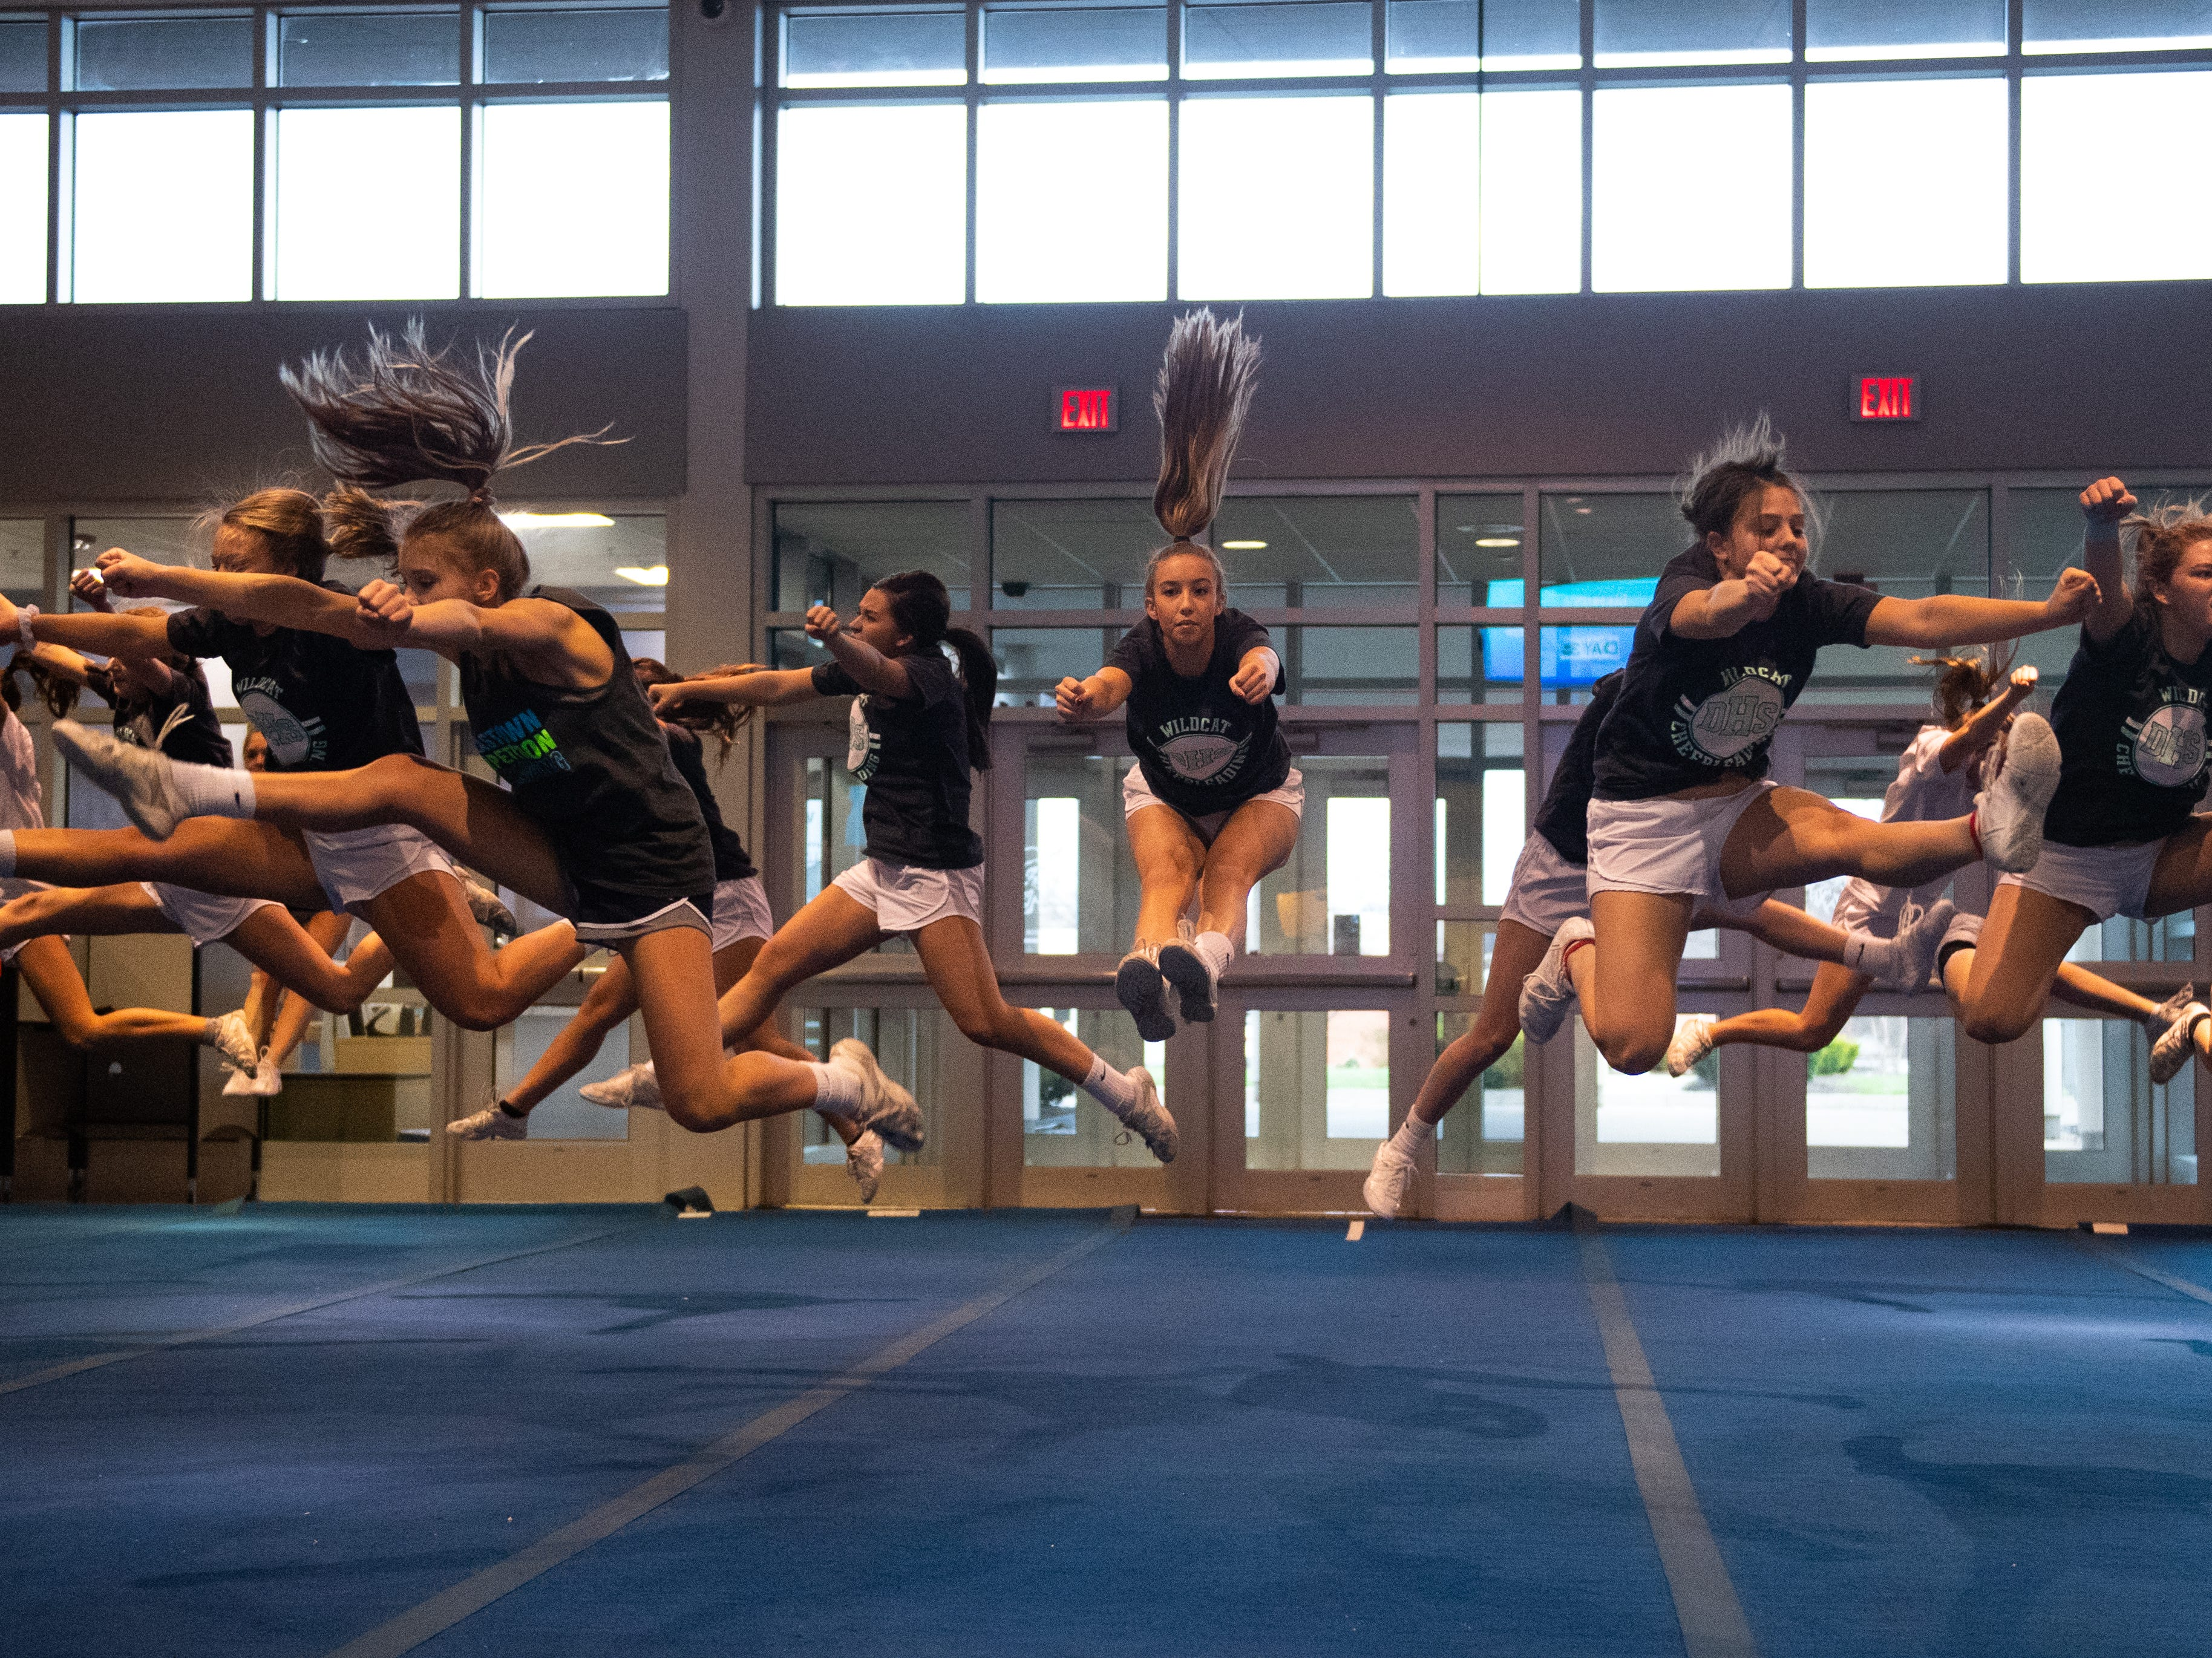 The team jumps together during Dallastown's competitive spirit practice, November 14, 2018.